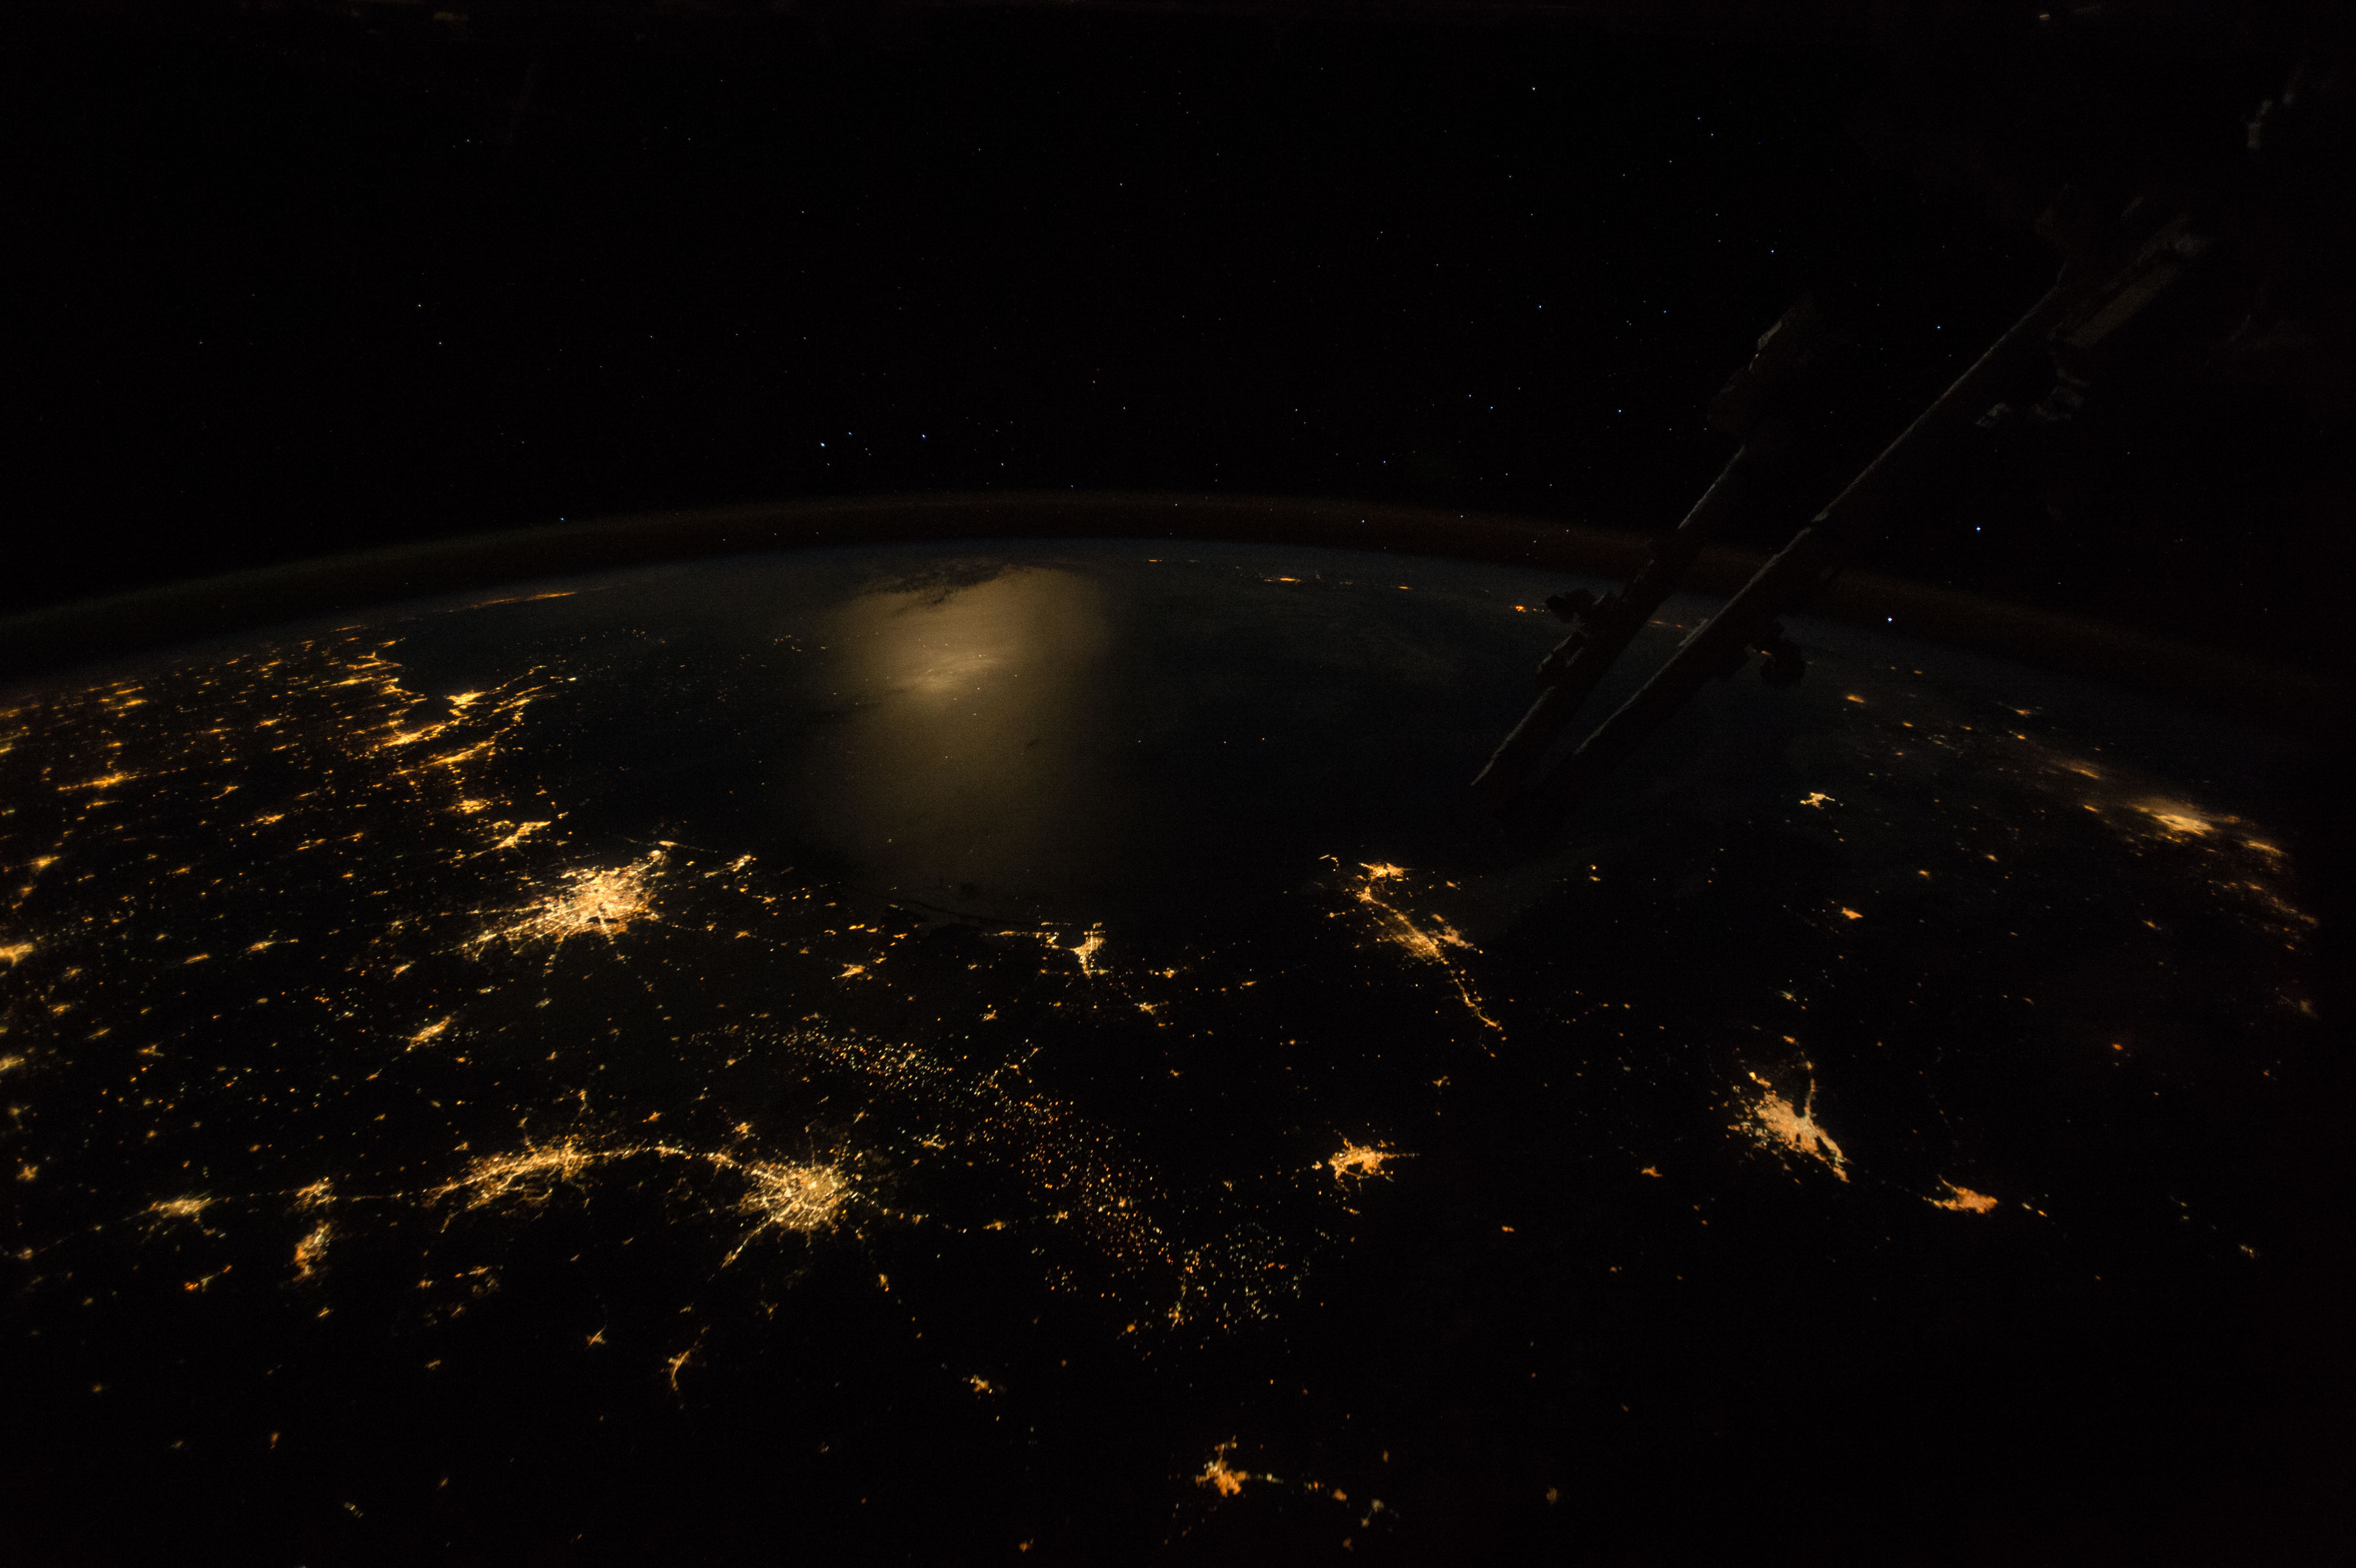 moon light on space station - photo #16